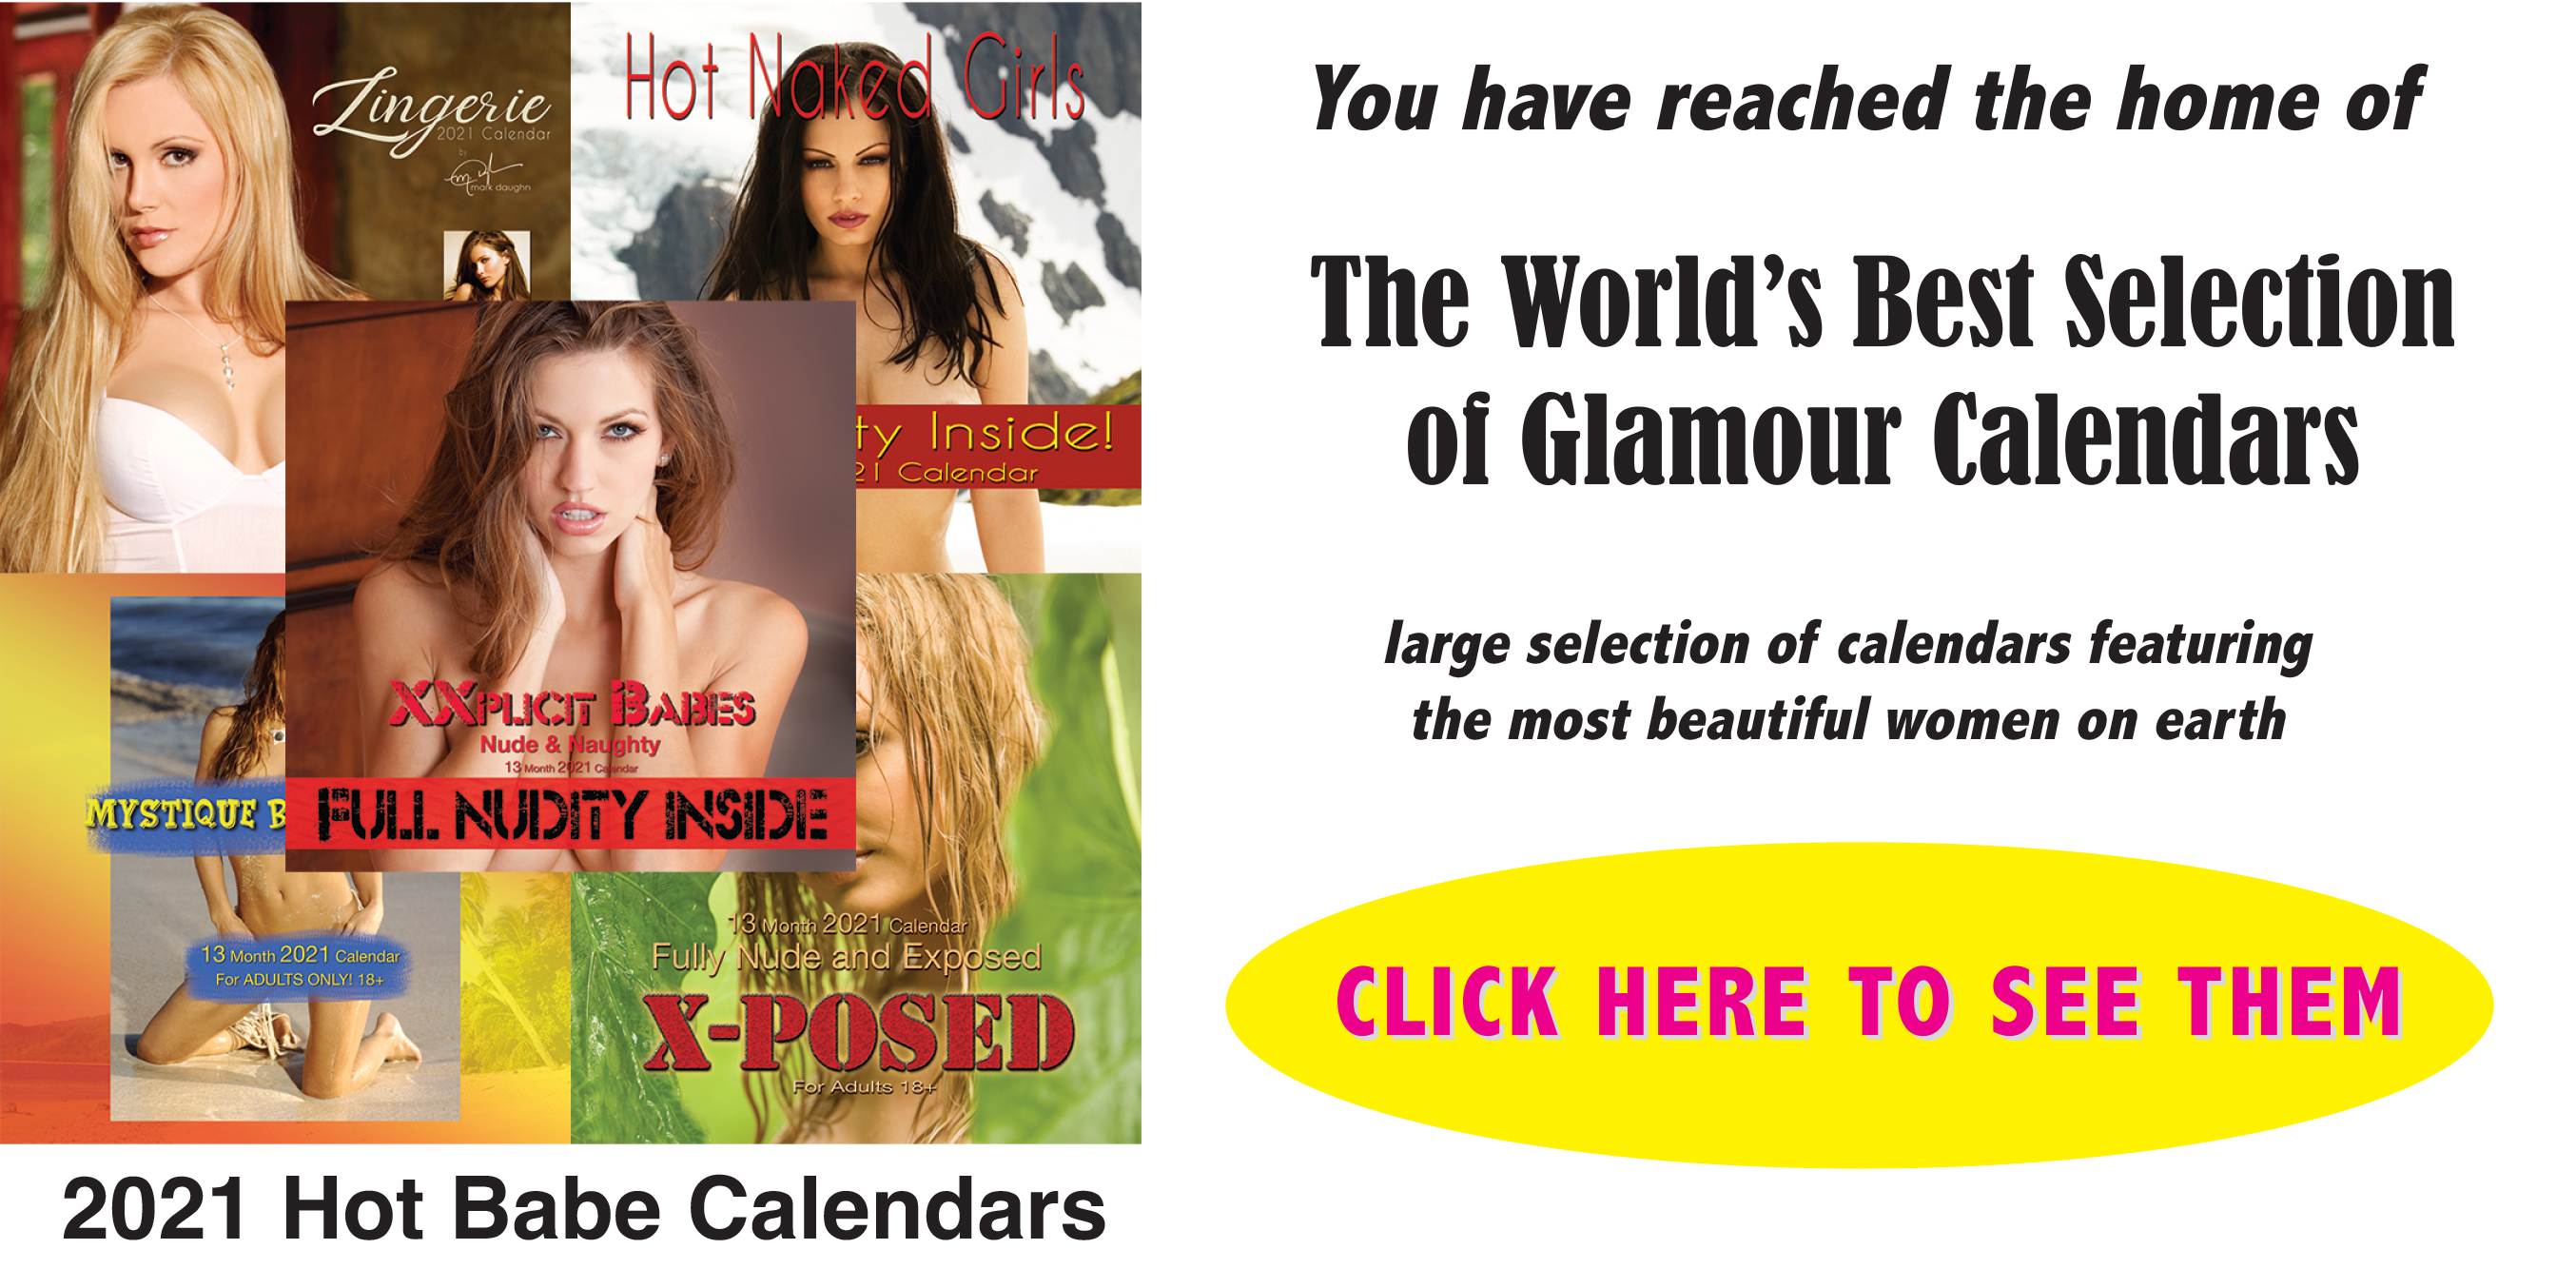 World's Largest Selection of Glamour Calendars